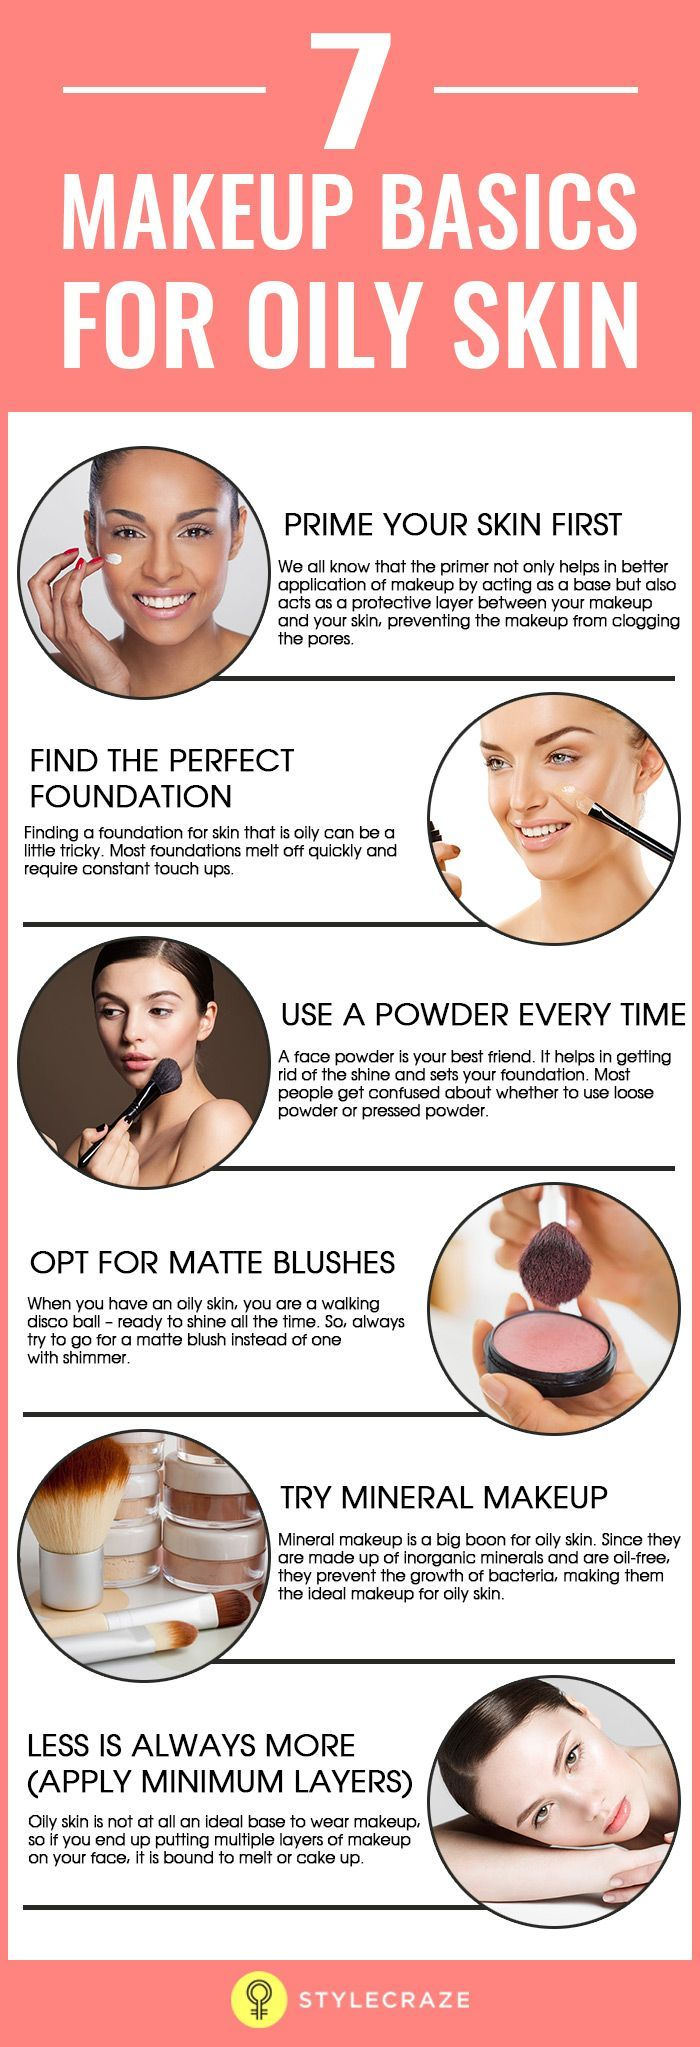 Most people with oily skin face a lot of problems when it comes to